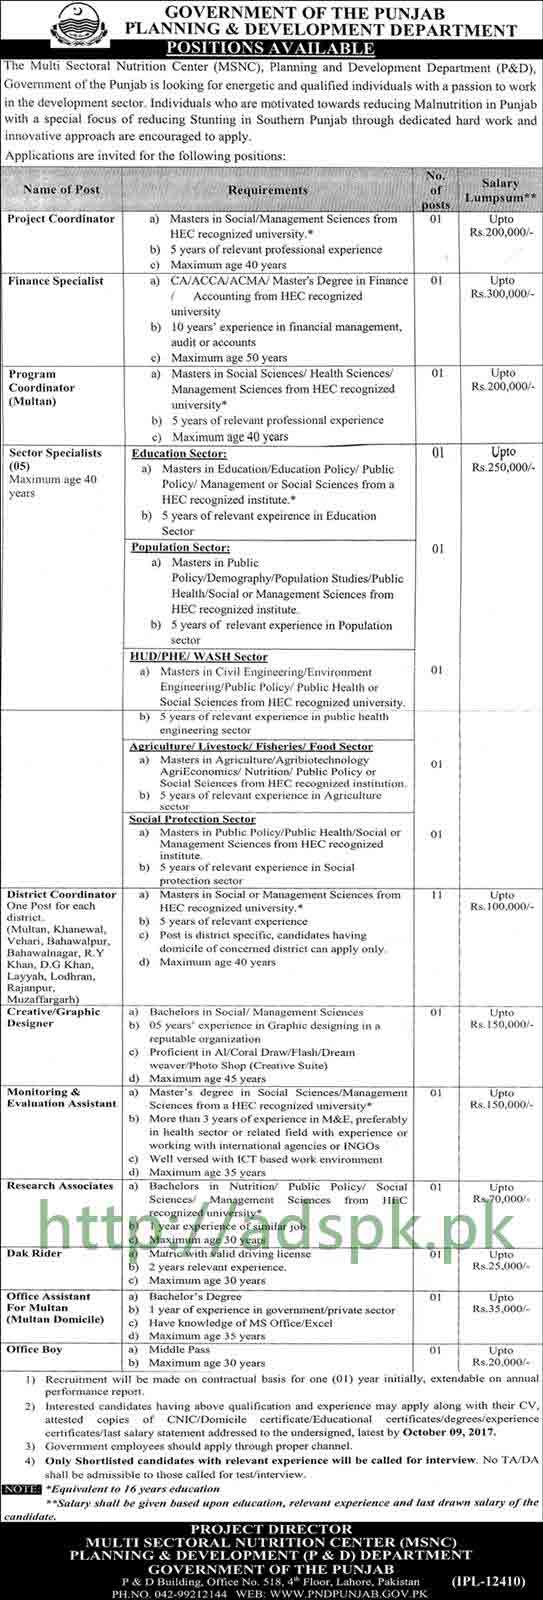 Jobs Planning & Development Department Punjab Government MSNC Jobs 2017 Project Coordinator Finance Specialist Program Coordinator Sector Specialist District Coordinator Graphic Designer M&E Assistant Jobs Application Deadline 09-10-2017 Apply Now